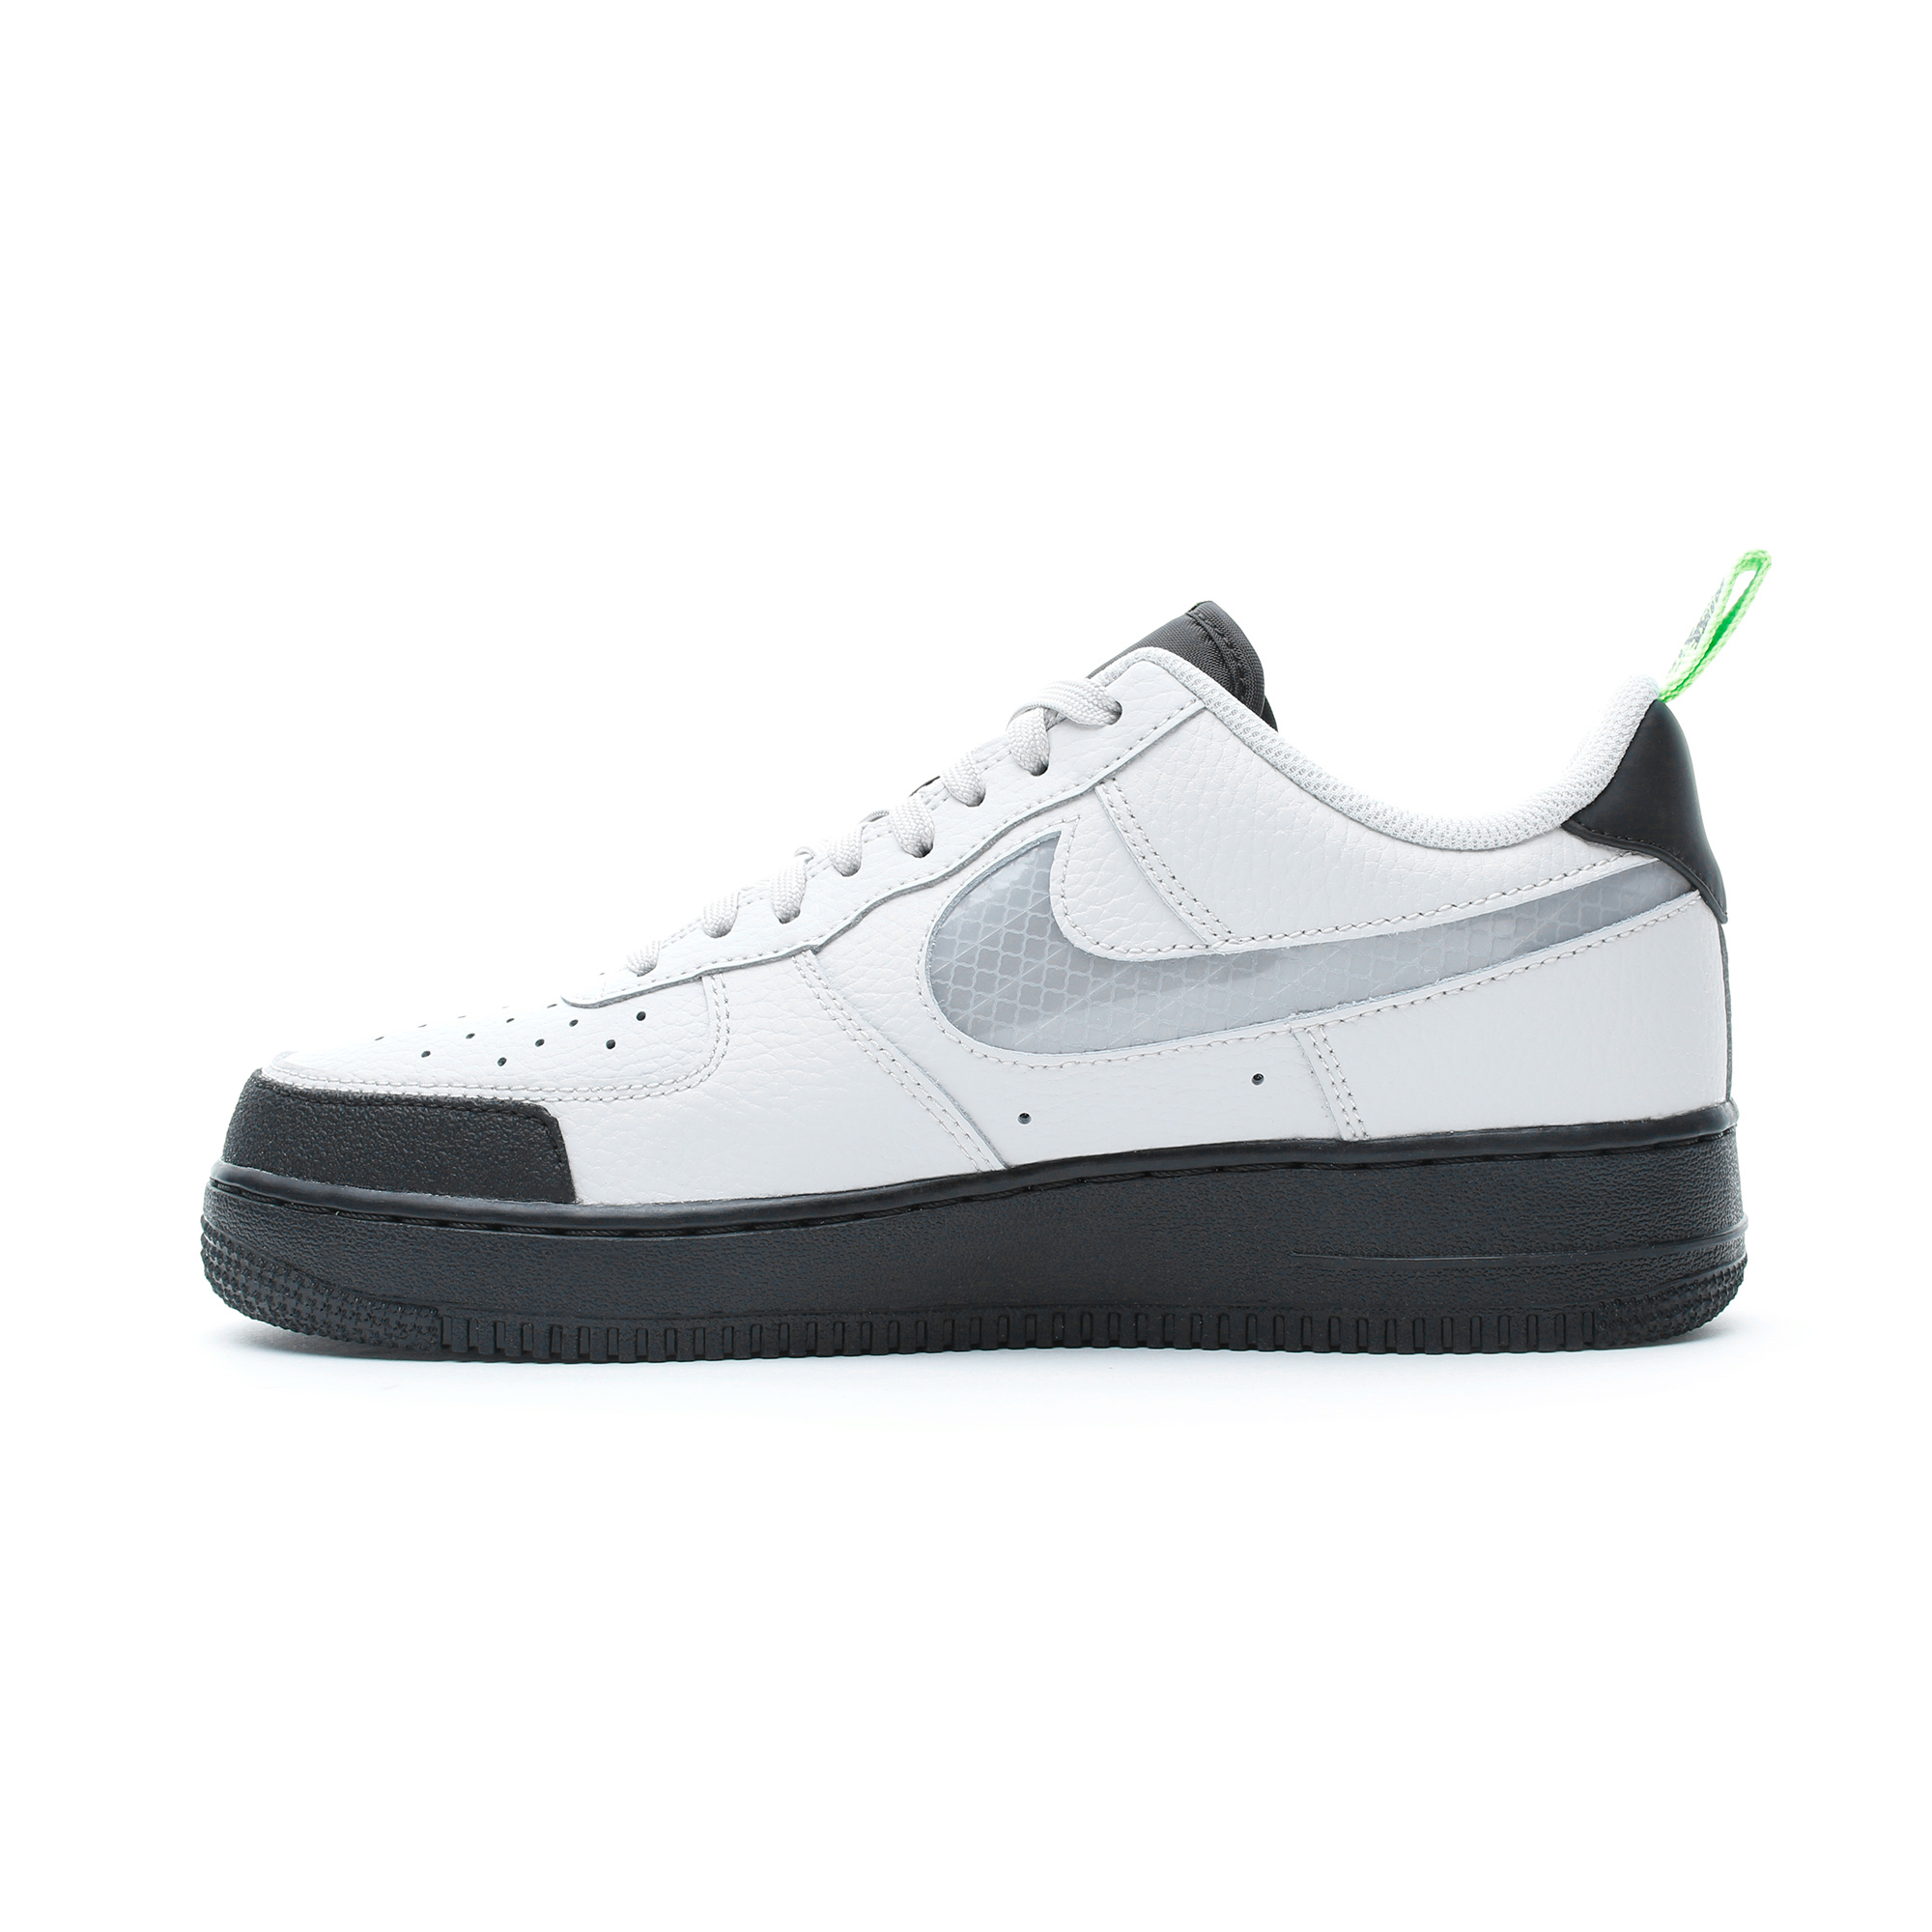 Imposible Barry congelador  Nike Air Force 1 '07 LV8 2 Beyaz Erkek Spor Ayakkabı Erkek Spor Ayakkabı &  Sneaker 3499352 | SuperStep